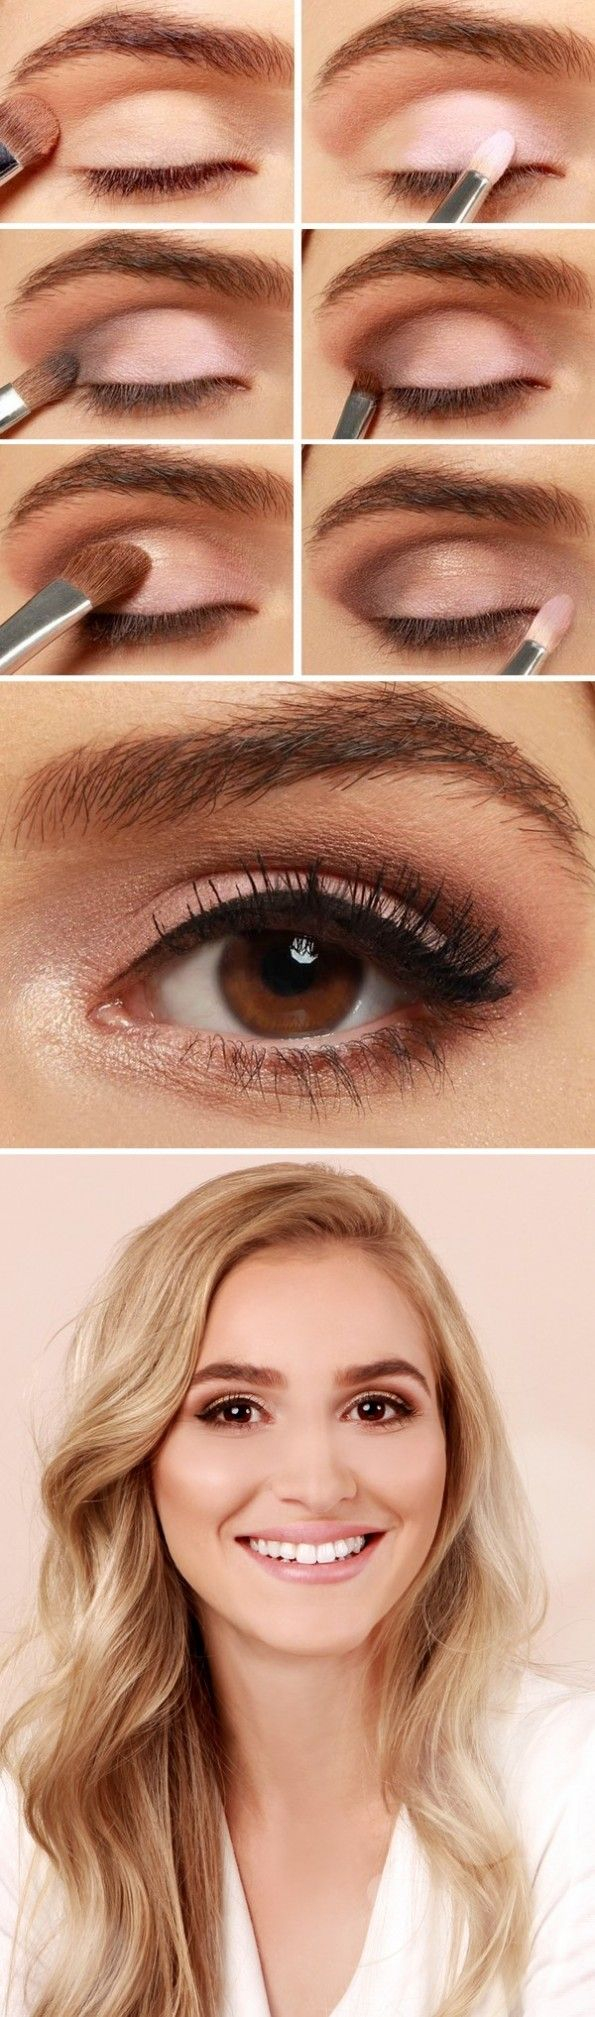 Natural Makeup For Brown Eyes 27 Pretty Makeup Tutorials For Brown Eyes Styles Weekly